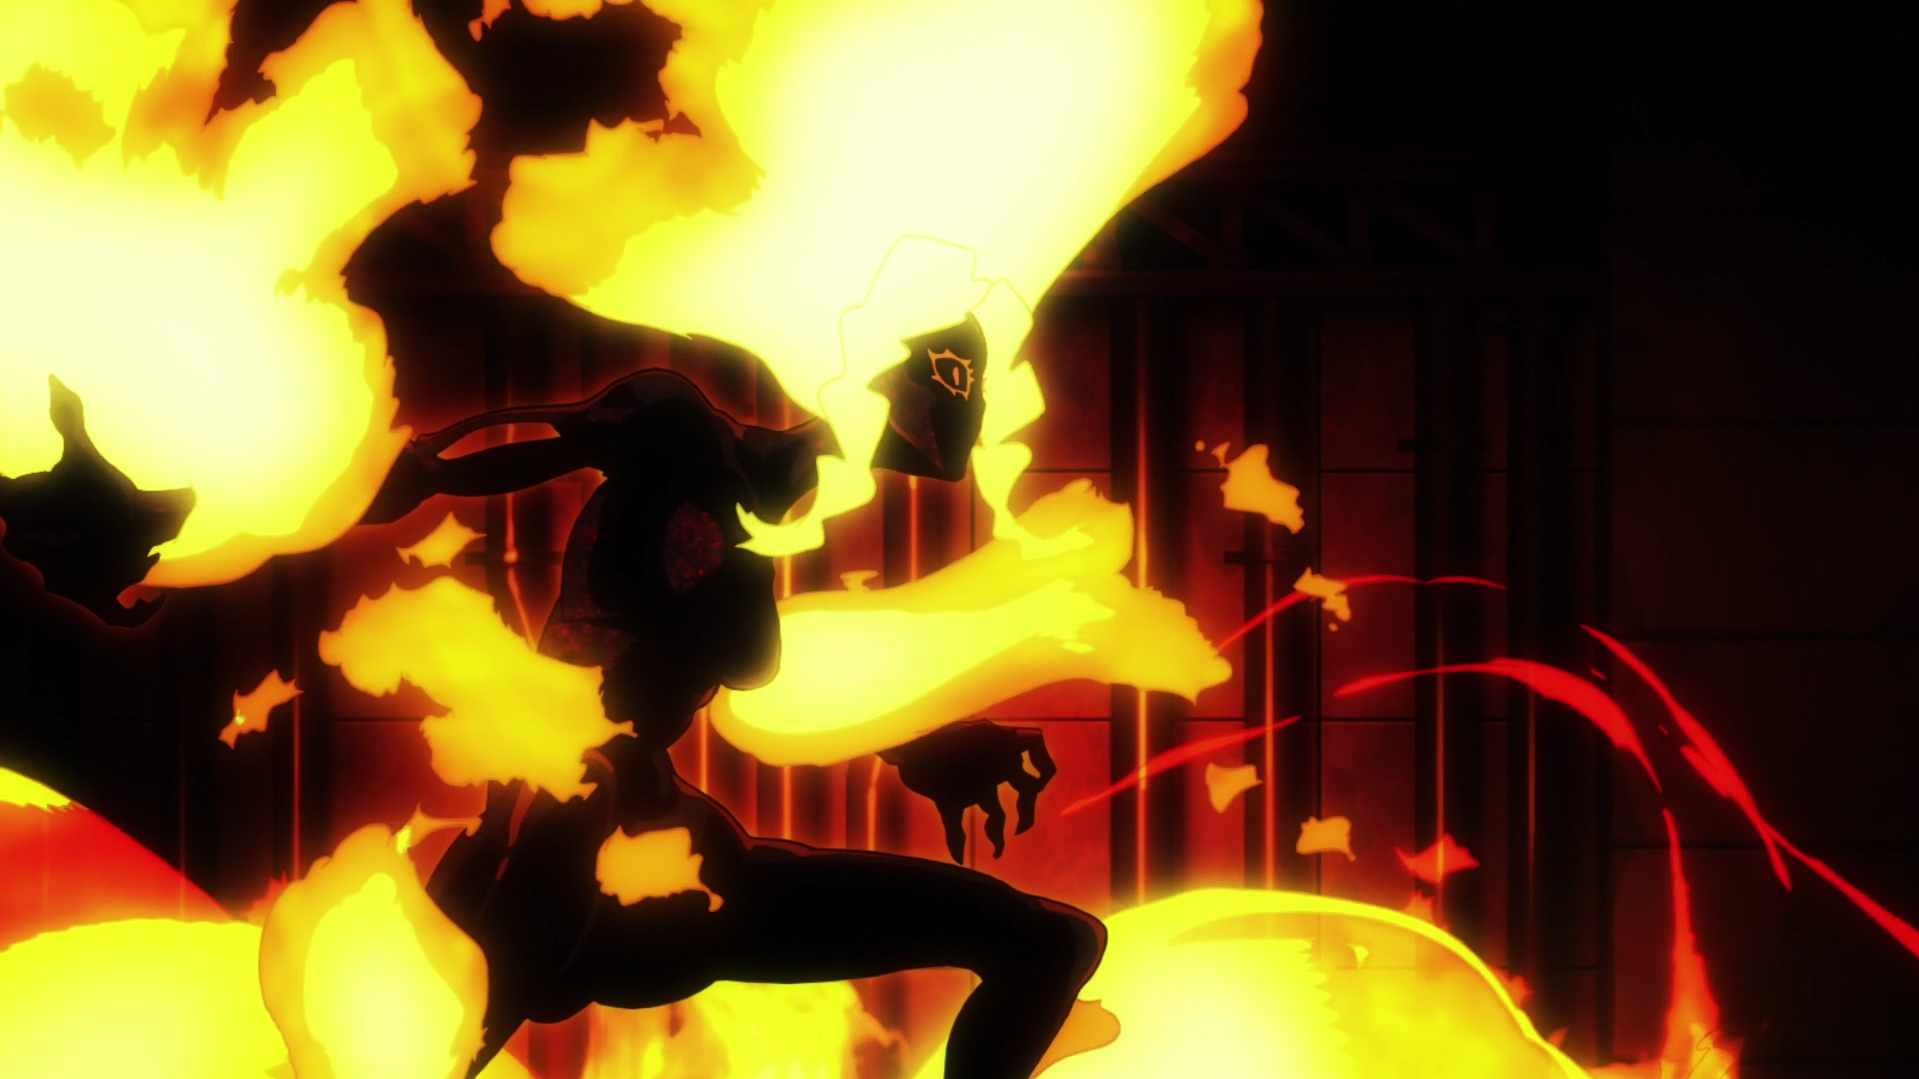 Review] Fire Force - Episode 1 - ANIME FEMINIST